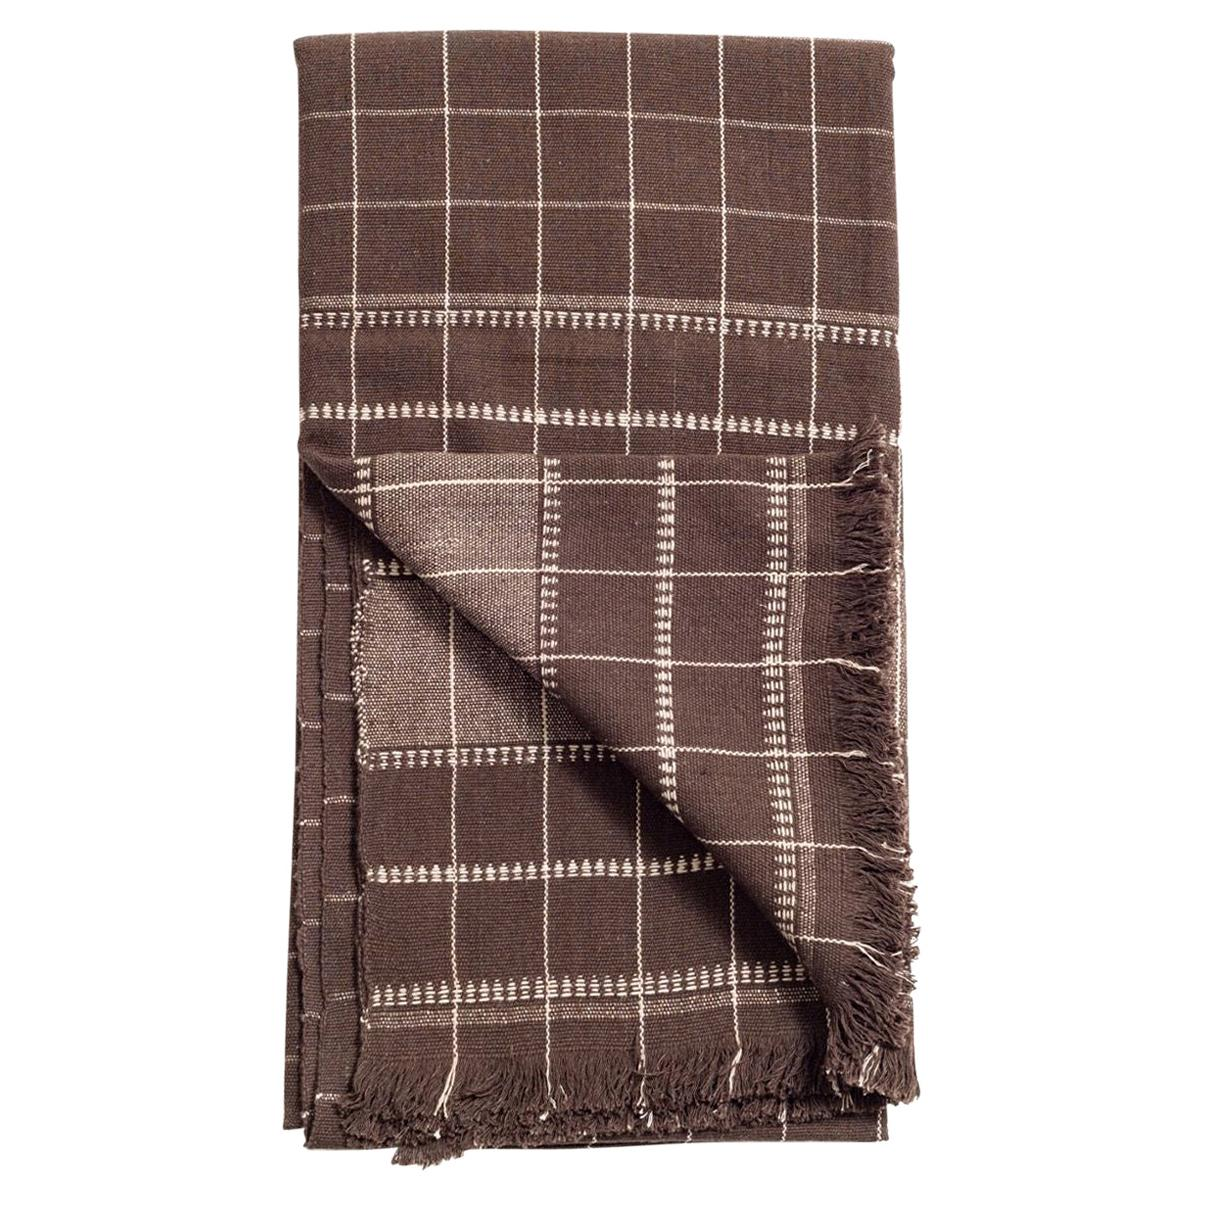 Treacle Brown Handloom King Size Bedspread / Coverlet in Organic Cotton